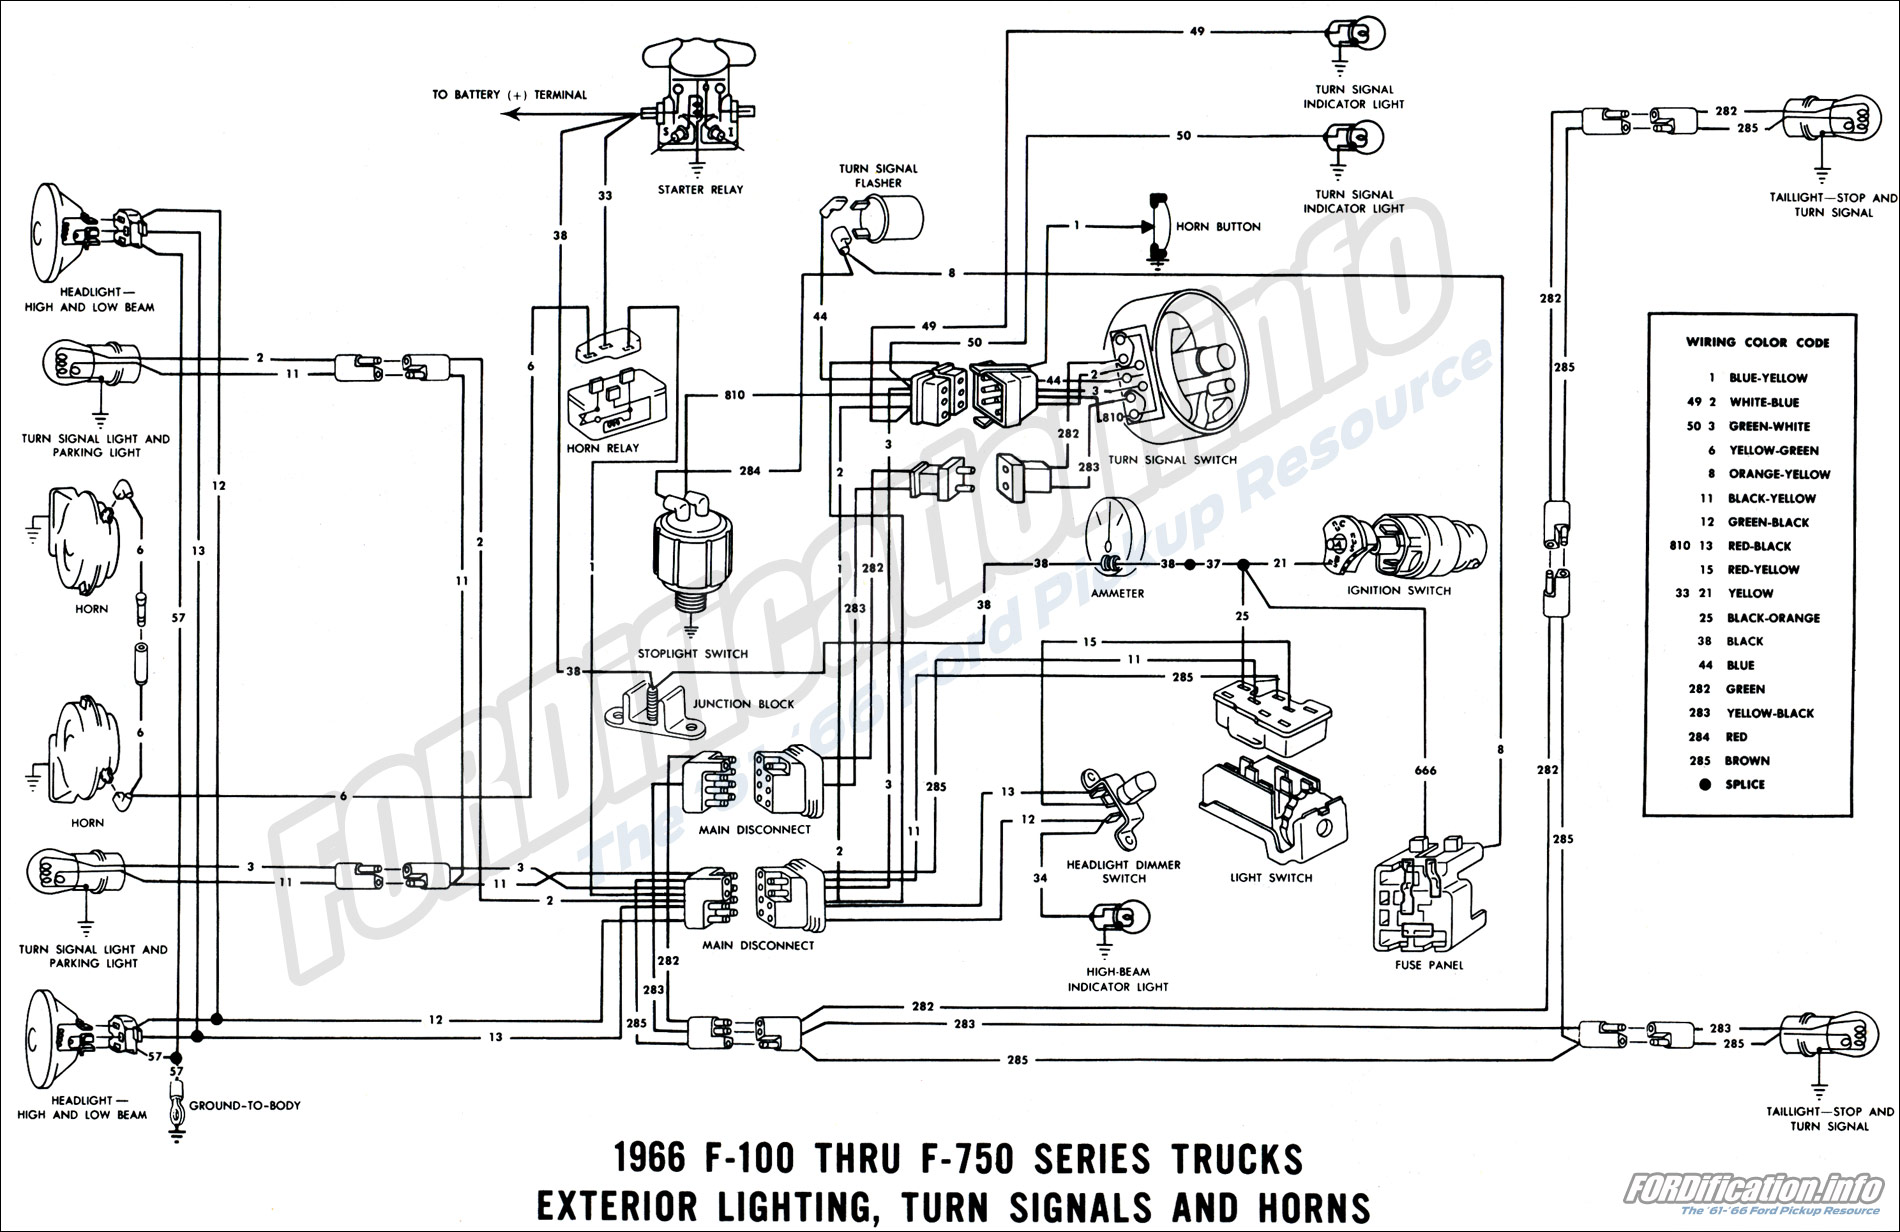 [SCHEMATICS_4FR]  1966 Ford Truck Wiring Diagrams - FORDification.info - The '61-'66 Ford  Pickup Resource | 1966 Ford F100 Wiring Diagram |  | FORDification.info